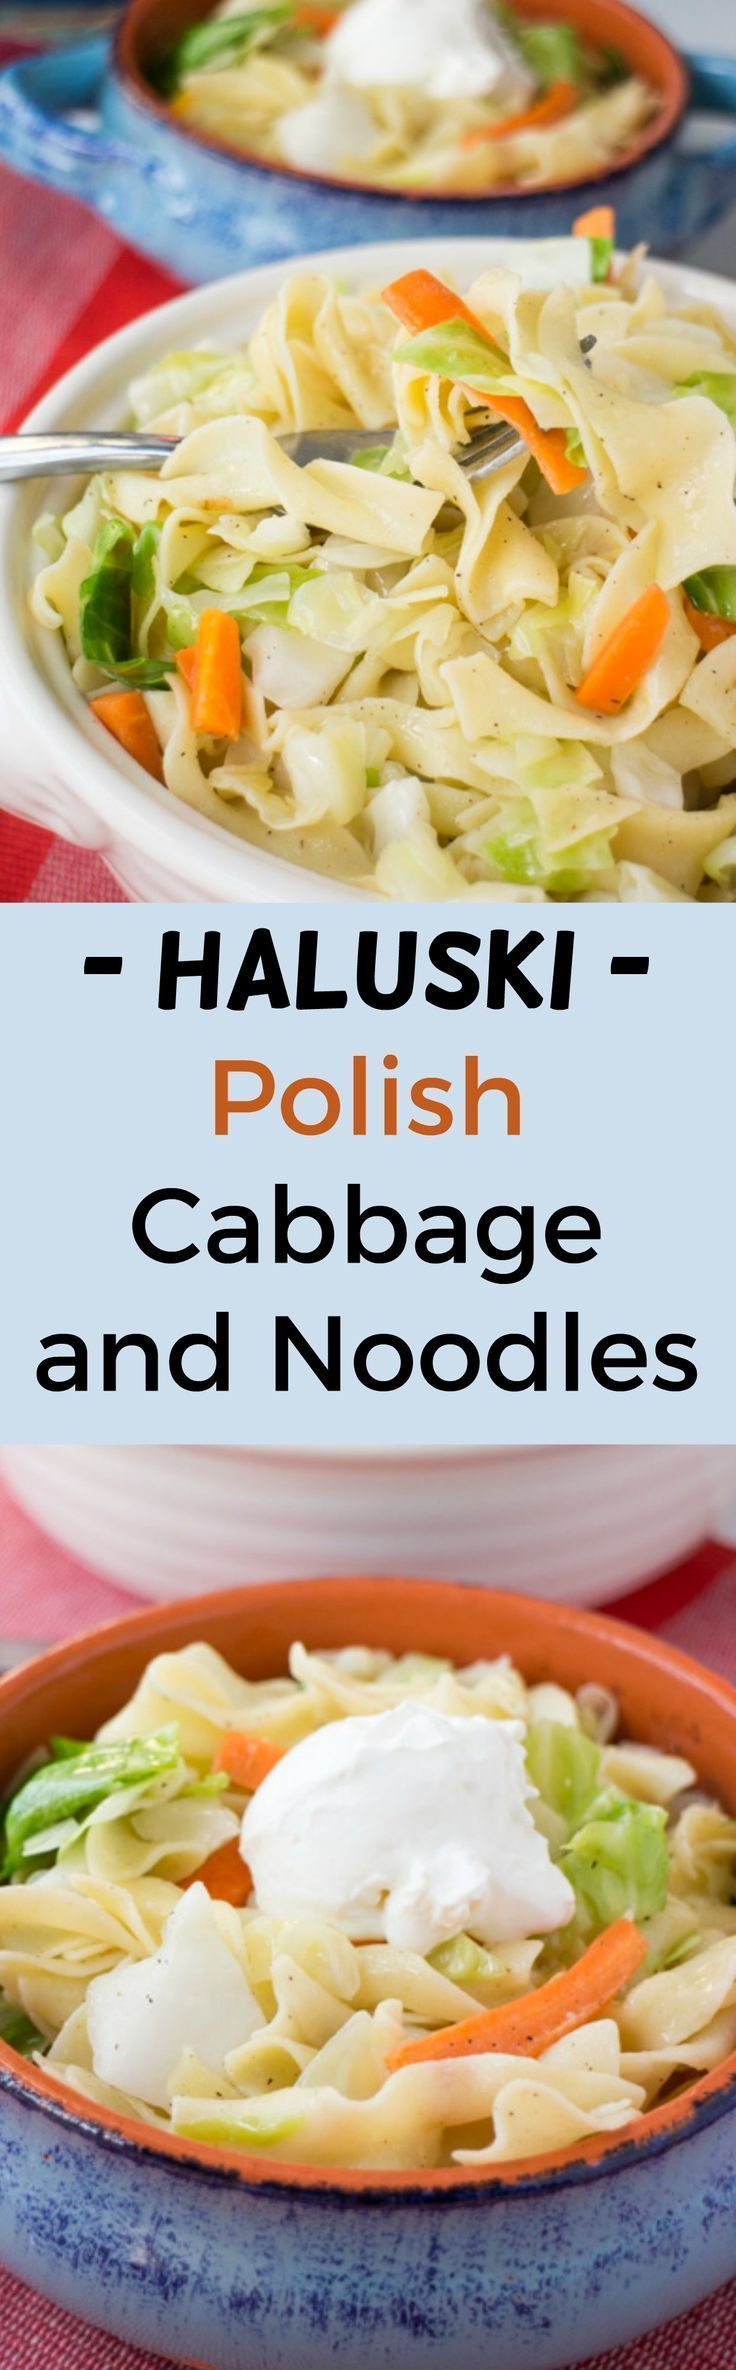 Haluski is a popular Eastern European dish, especially in Poland, that is quick and easy to make.  A big bowl of noodles and vegetables is sure to please your entire Family at dinnertime. Enjoy this delicious Haluski recipe passed on to me by my Polish gr